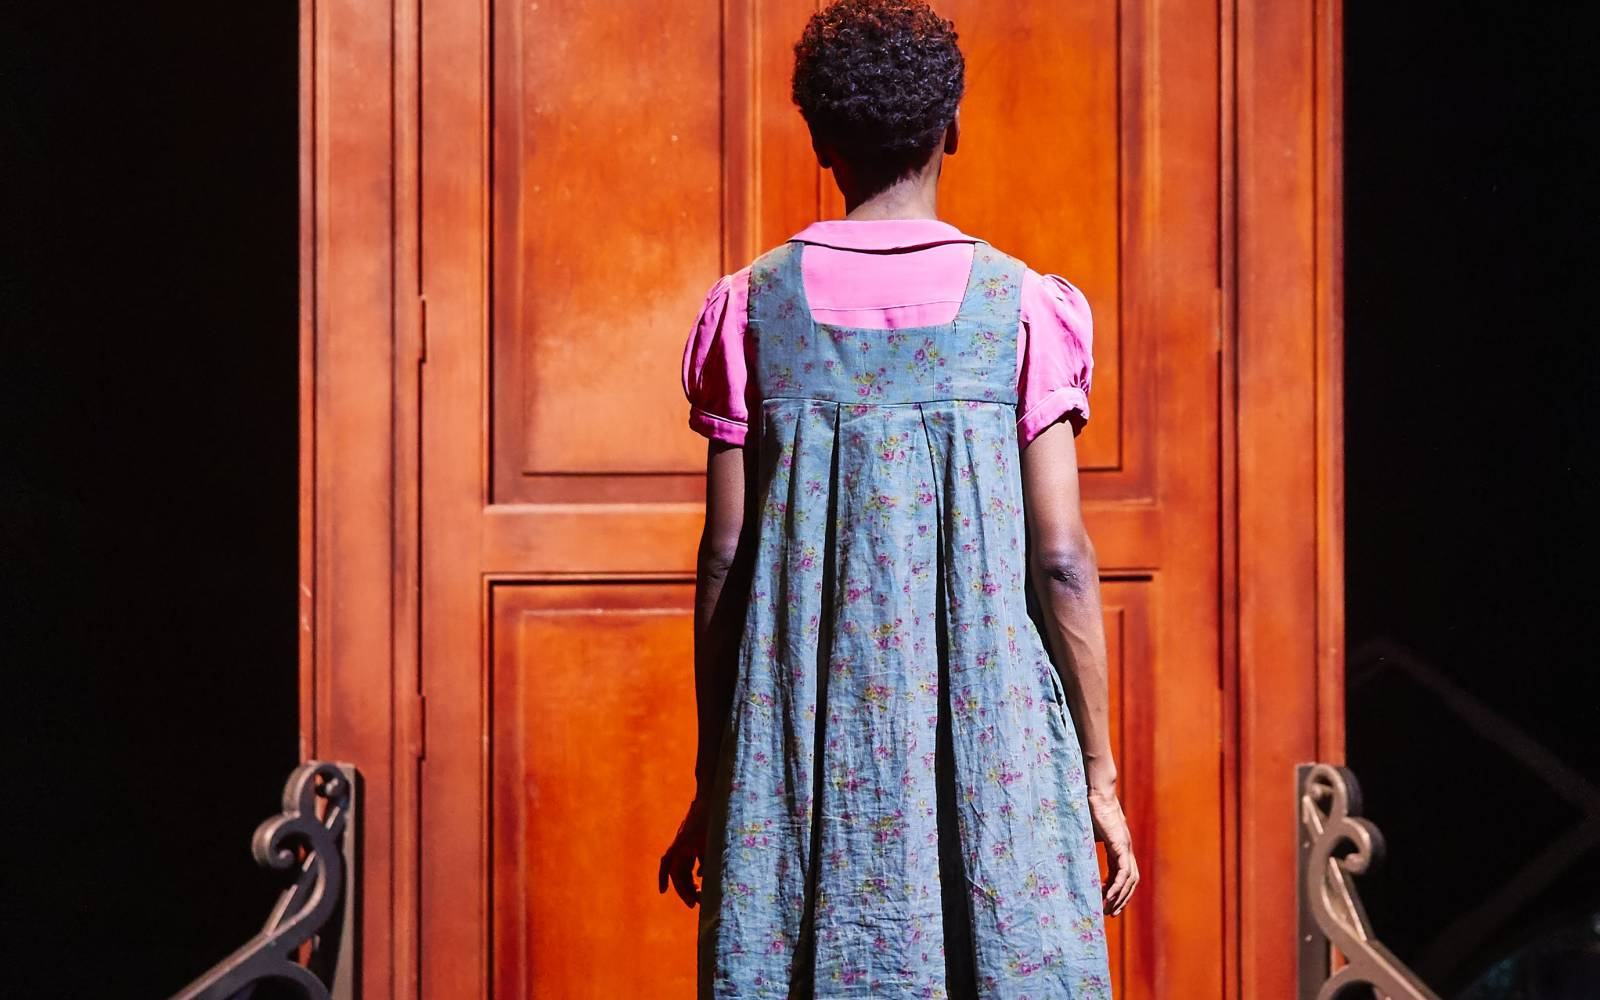 A woman seen from behind. She stands in front of a large wooden door